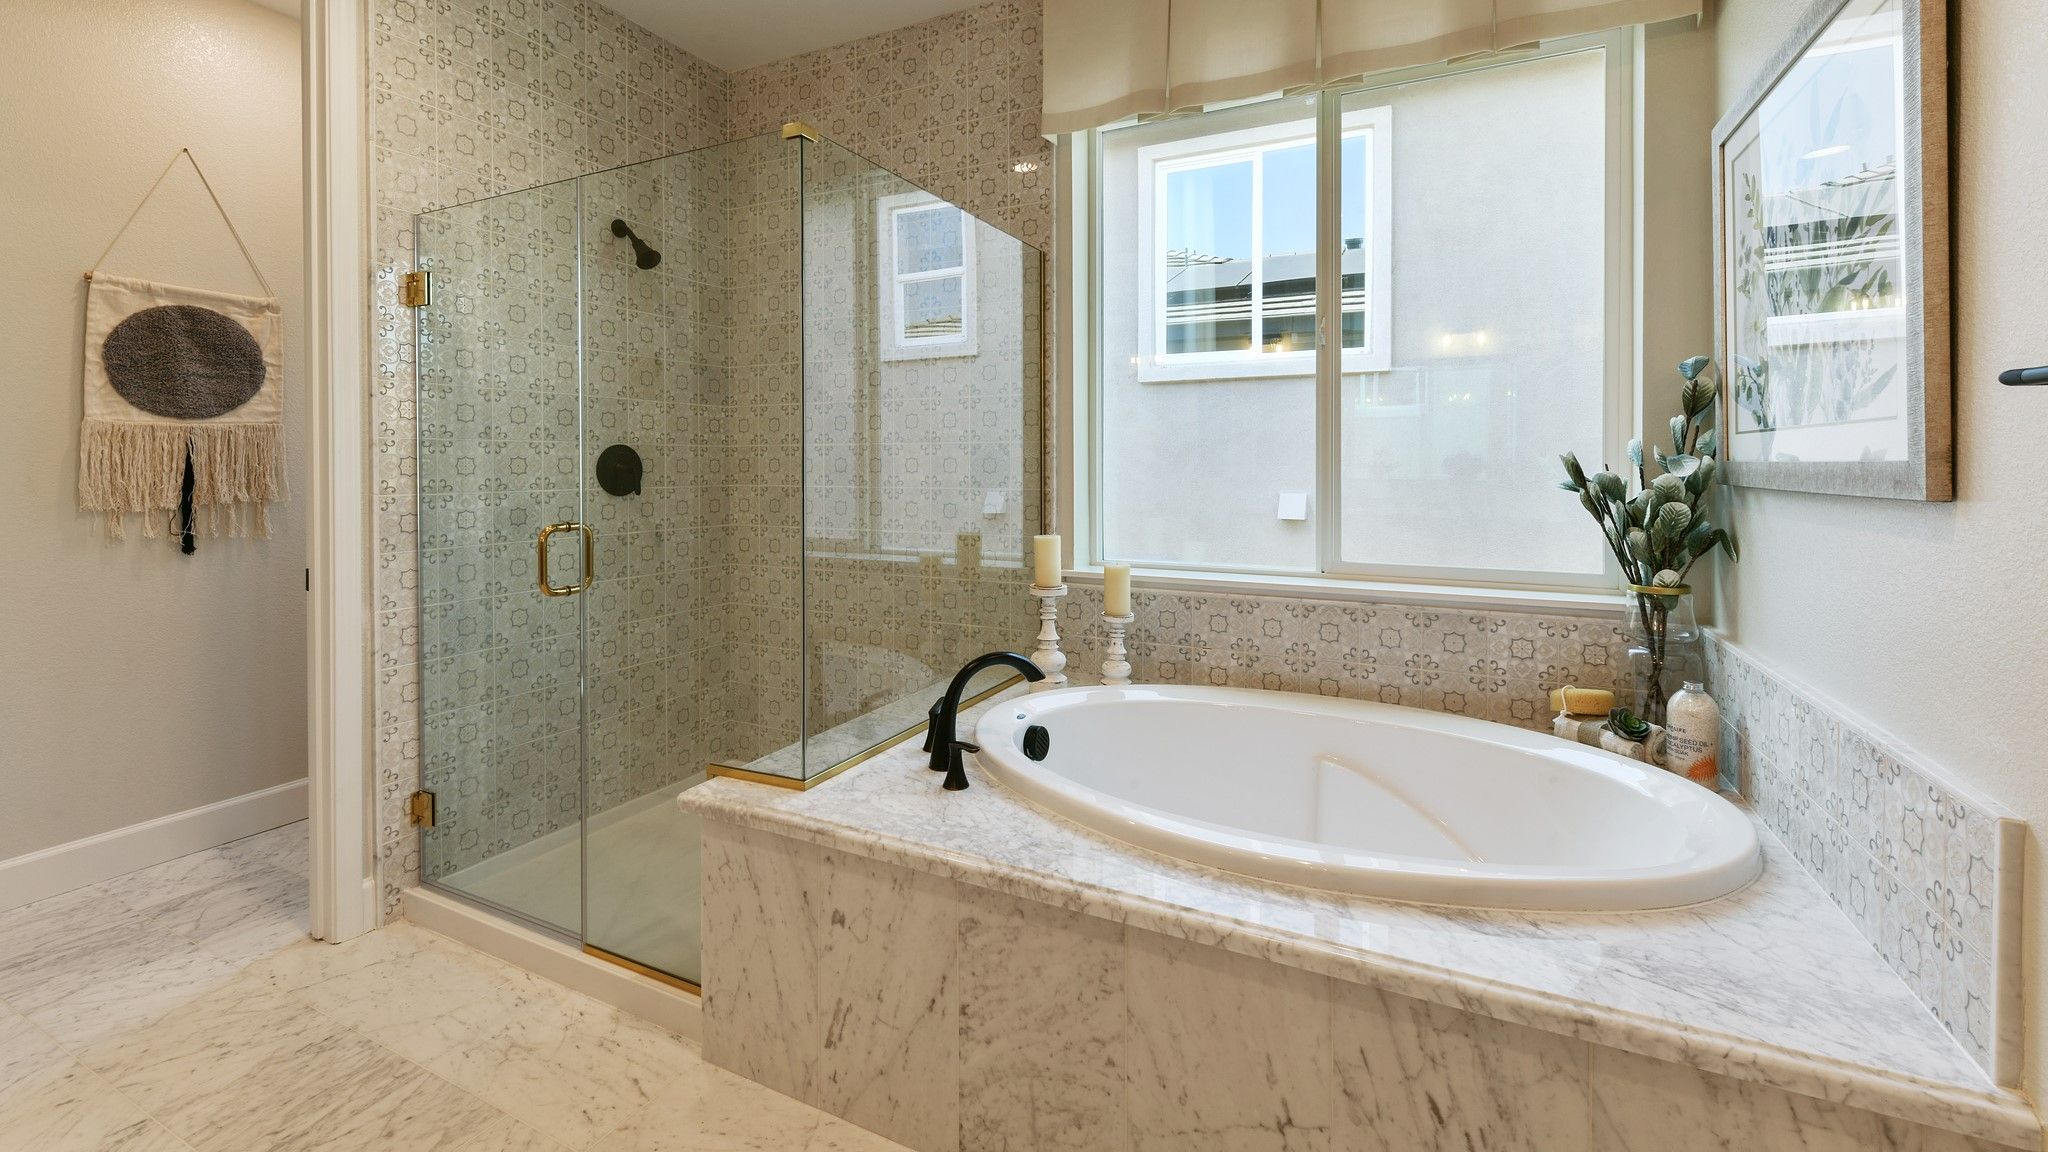 Bathroom featured in the Davoli By Seeno Homes in Oakland-Alameda, CA